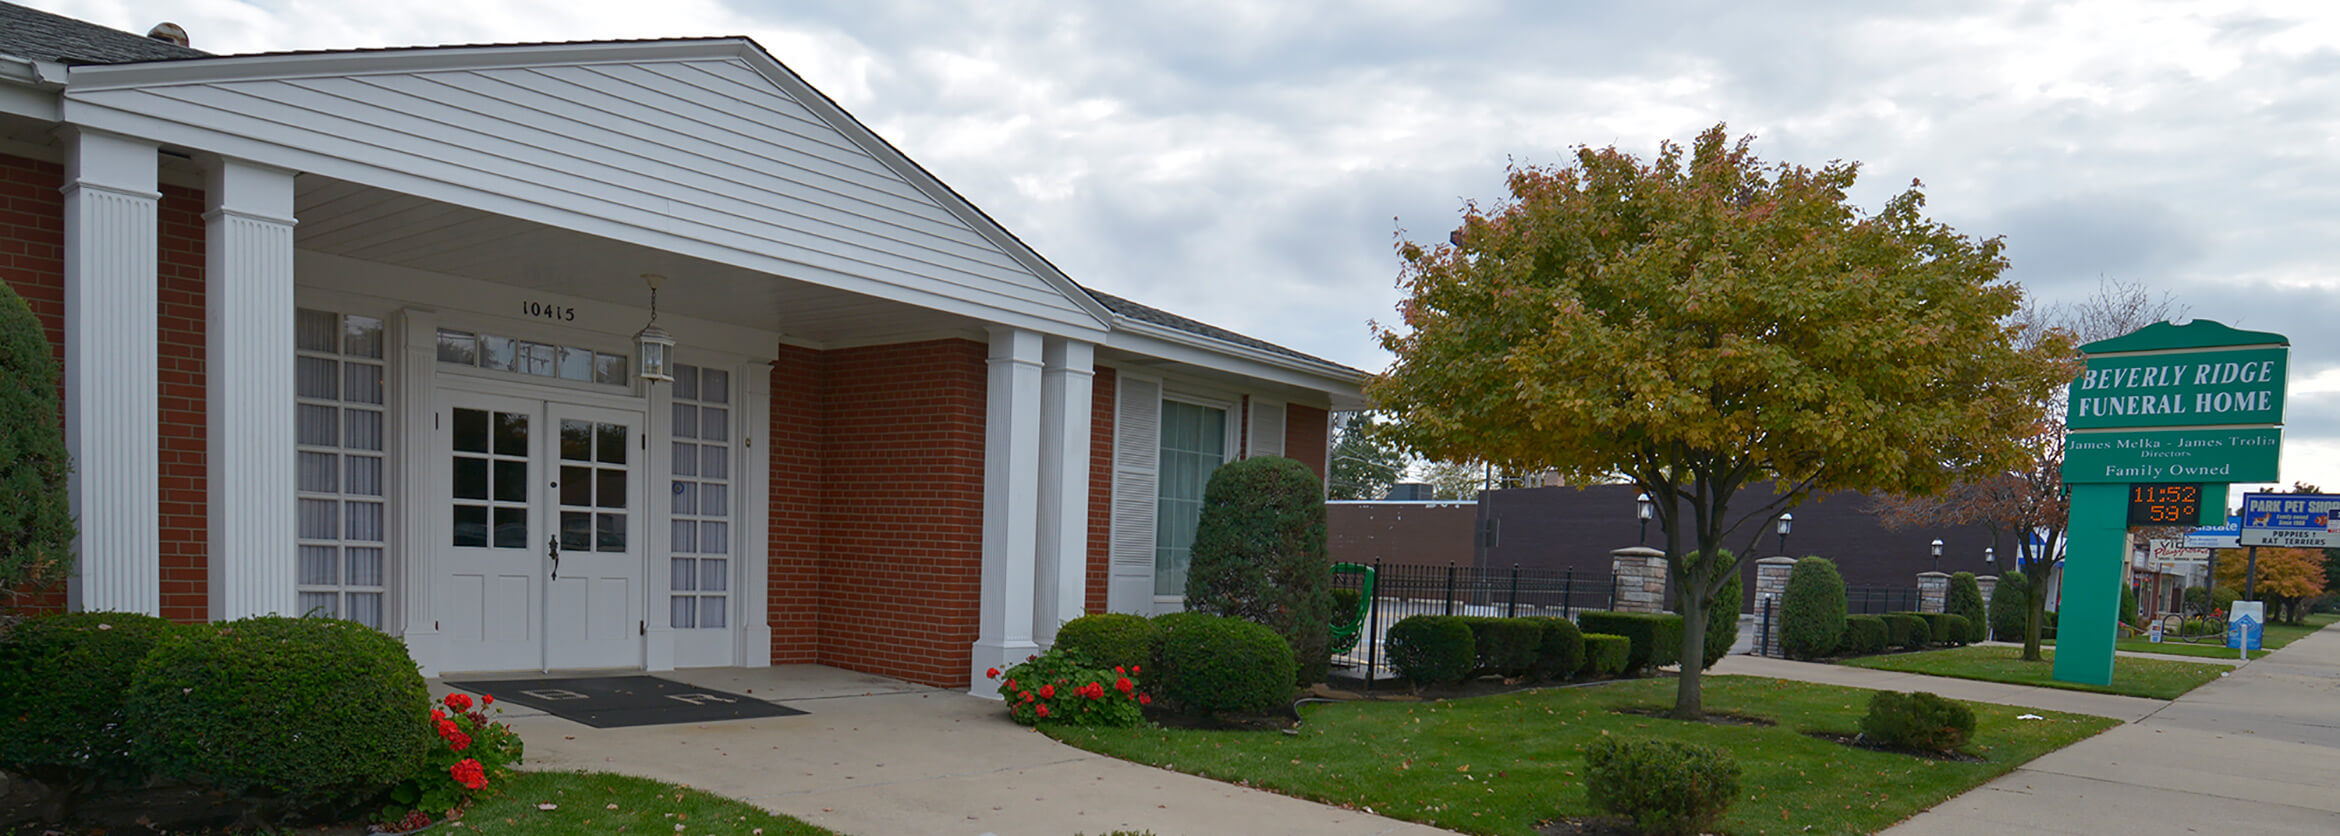 Beverly Ridge Funeral Home | Chicago IL funeral home and